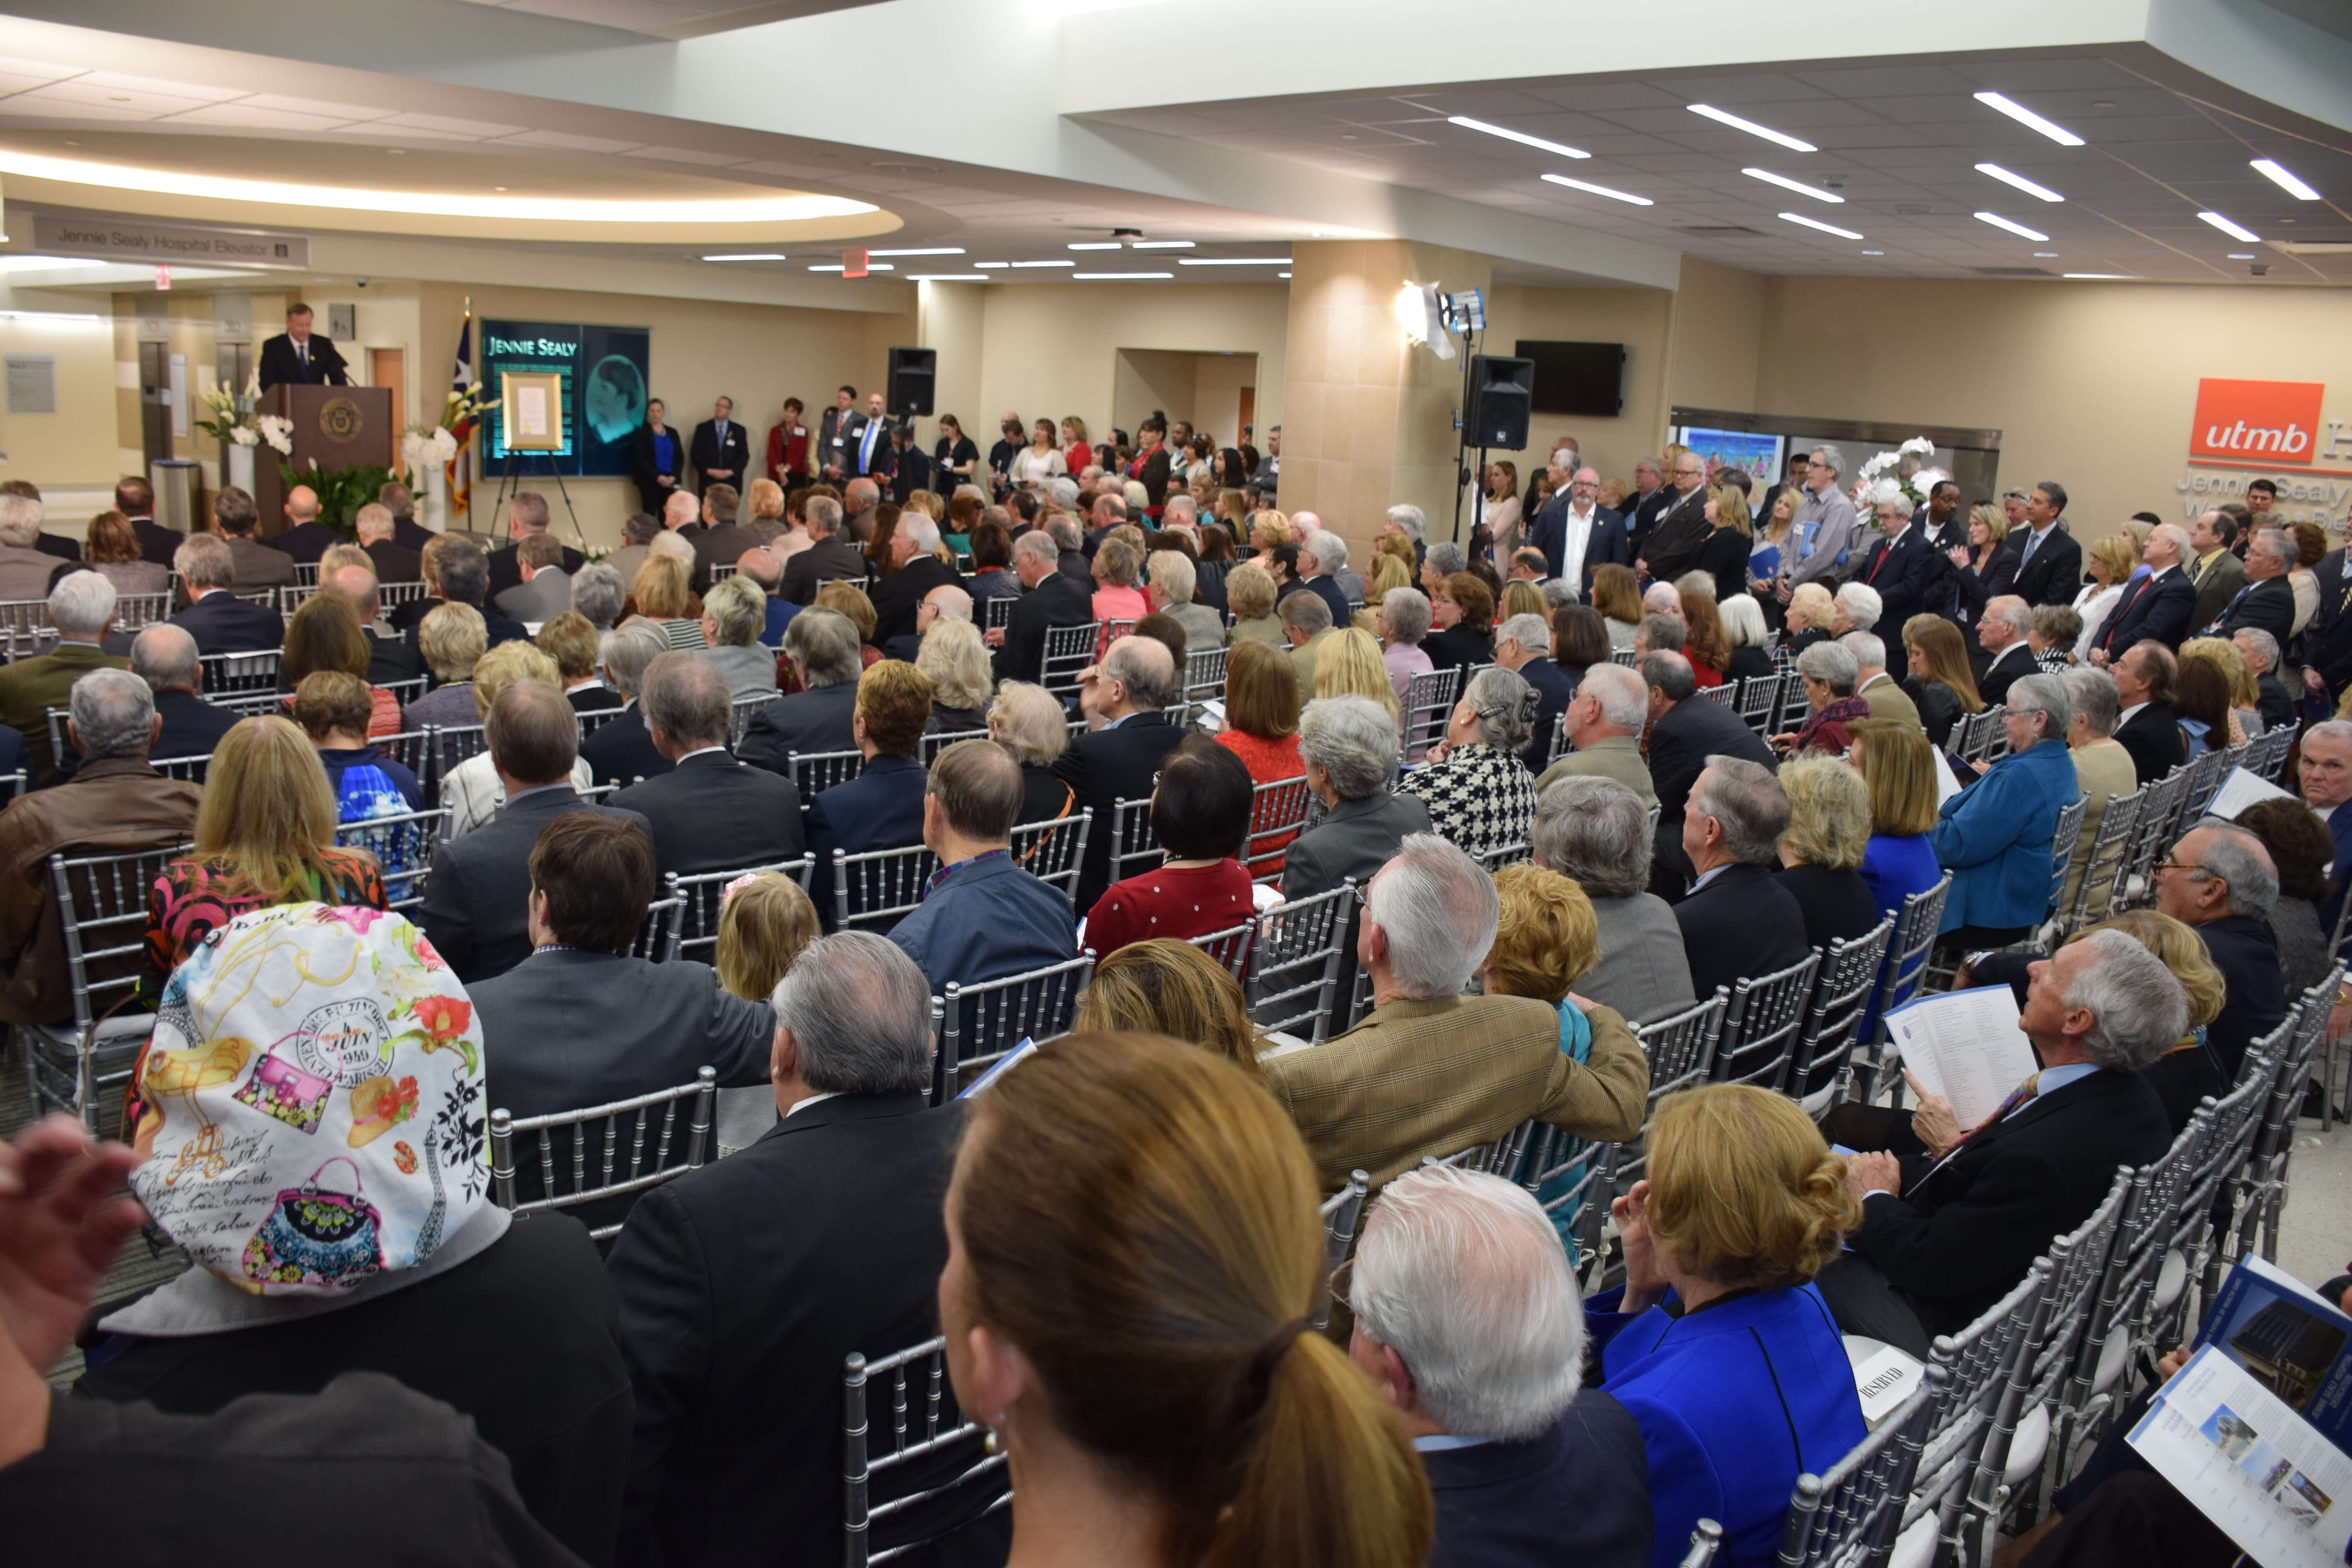 The Feb. 26 dedication of the new Jennie Sealy Hospital drew more than 700 people. The hospital is scheduled to begin accepting patients in April. (Credit: UTMB)